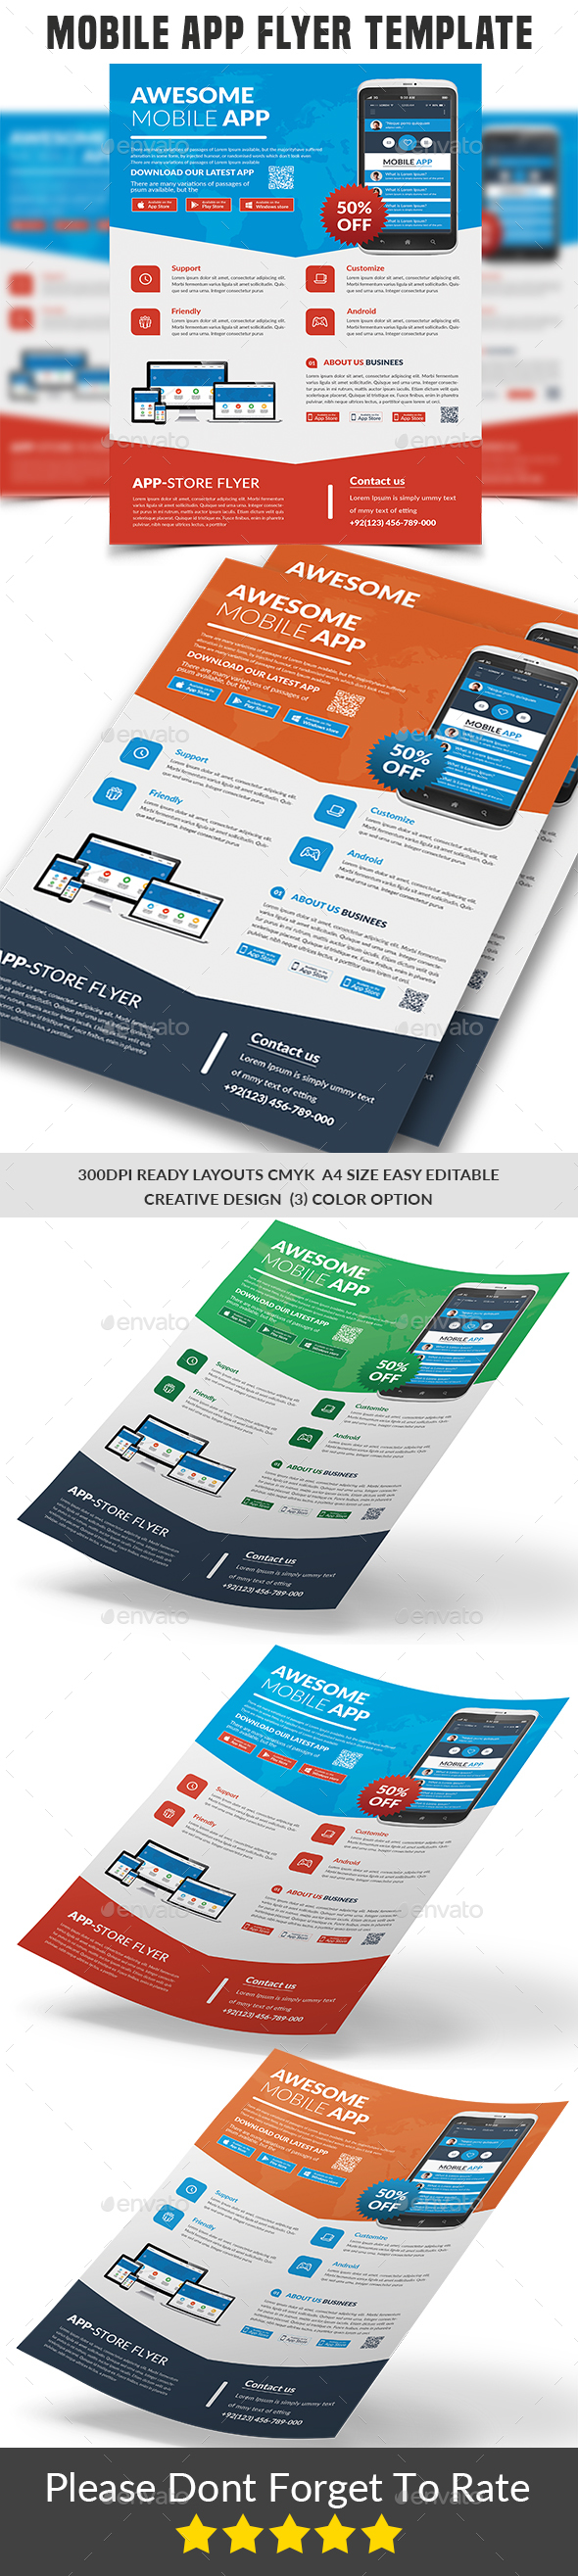 GraphicRiver Mobile App Flyer Template 21178340